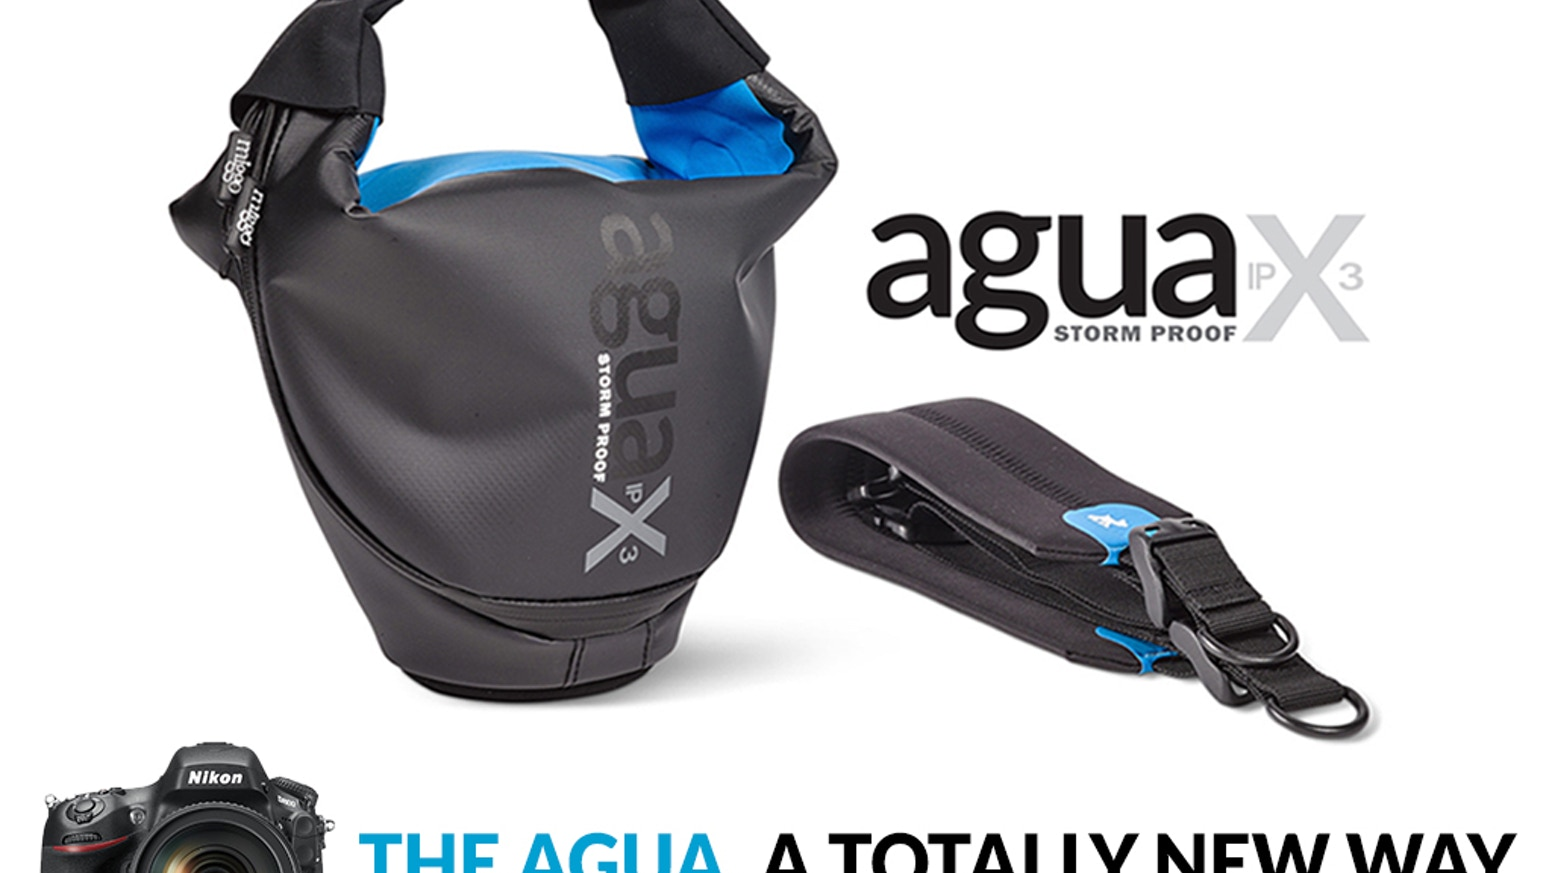 AGUA is successfully funded! Order your agua at: www.mymiggo.com/products